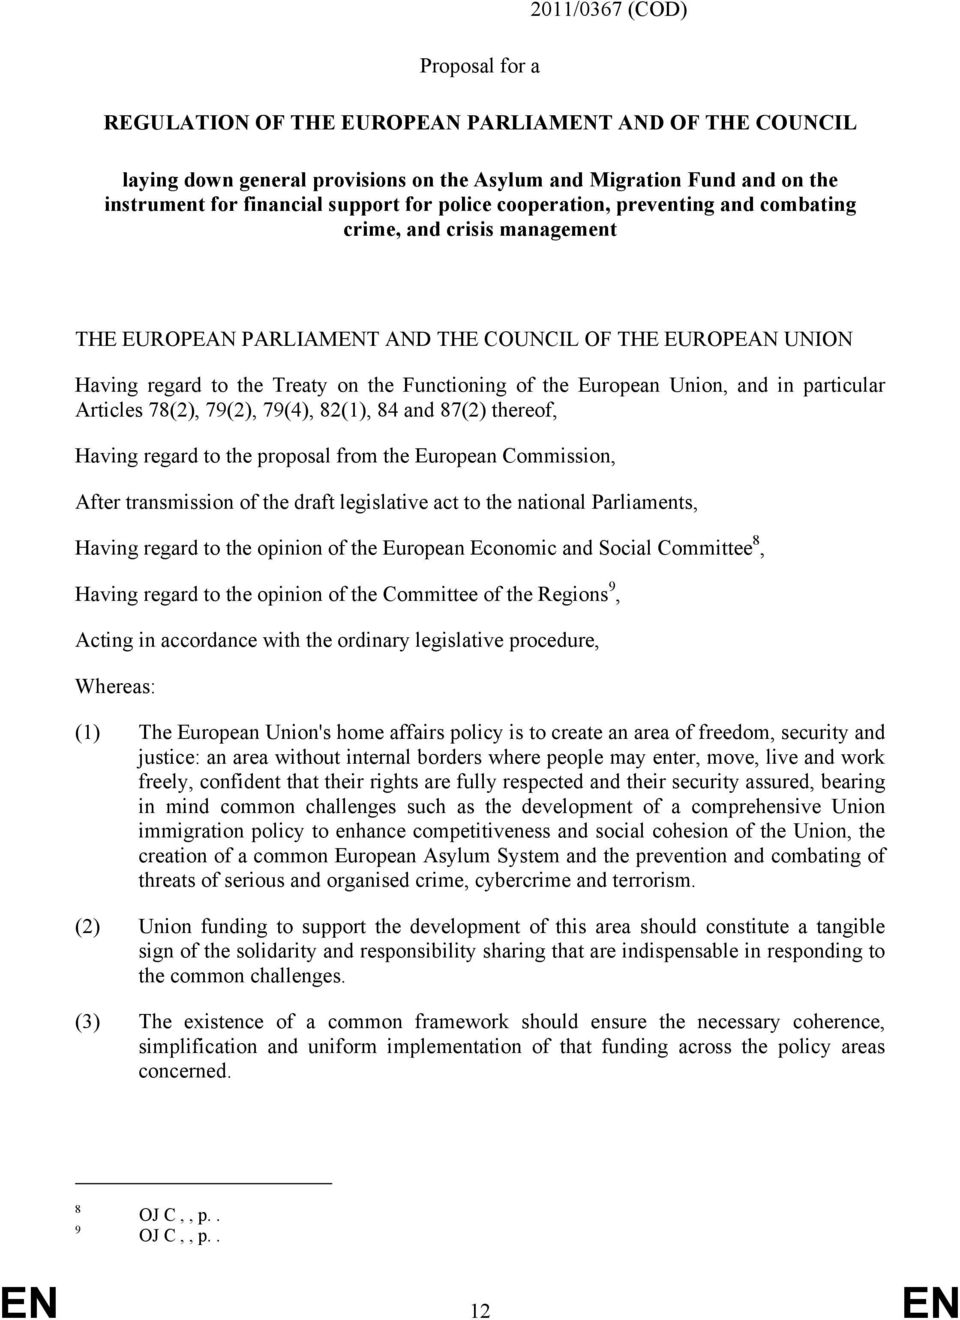 Union, and in particular Articles 78(2), 79(2), 79(4), 82(1), 84 and 87(2) thereof, Having regard to the proposal from the European Commission, After transmission of the draft legislative act to the